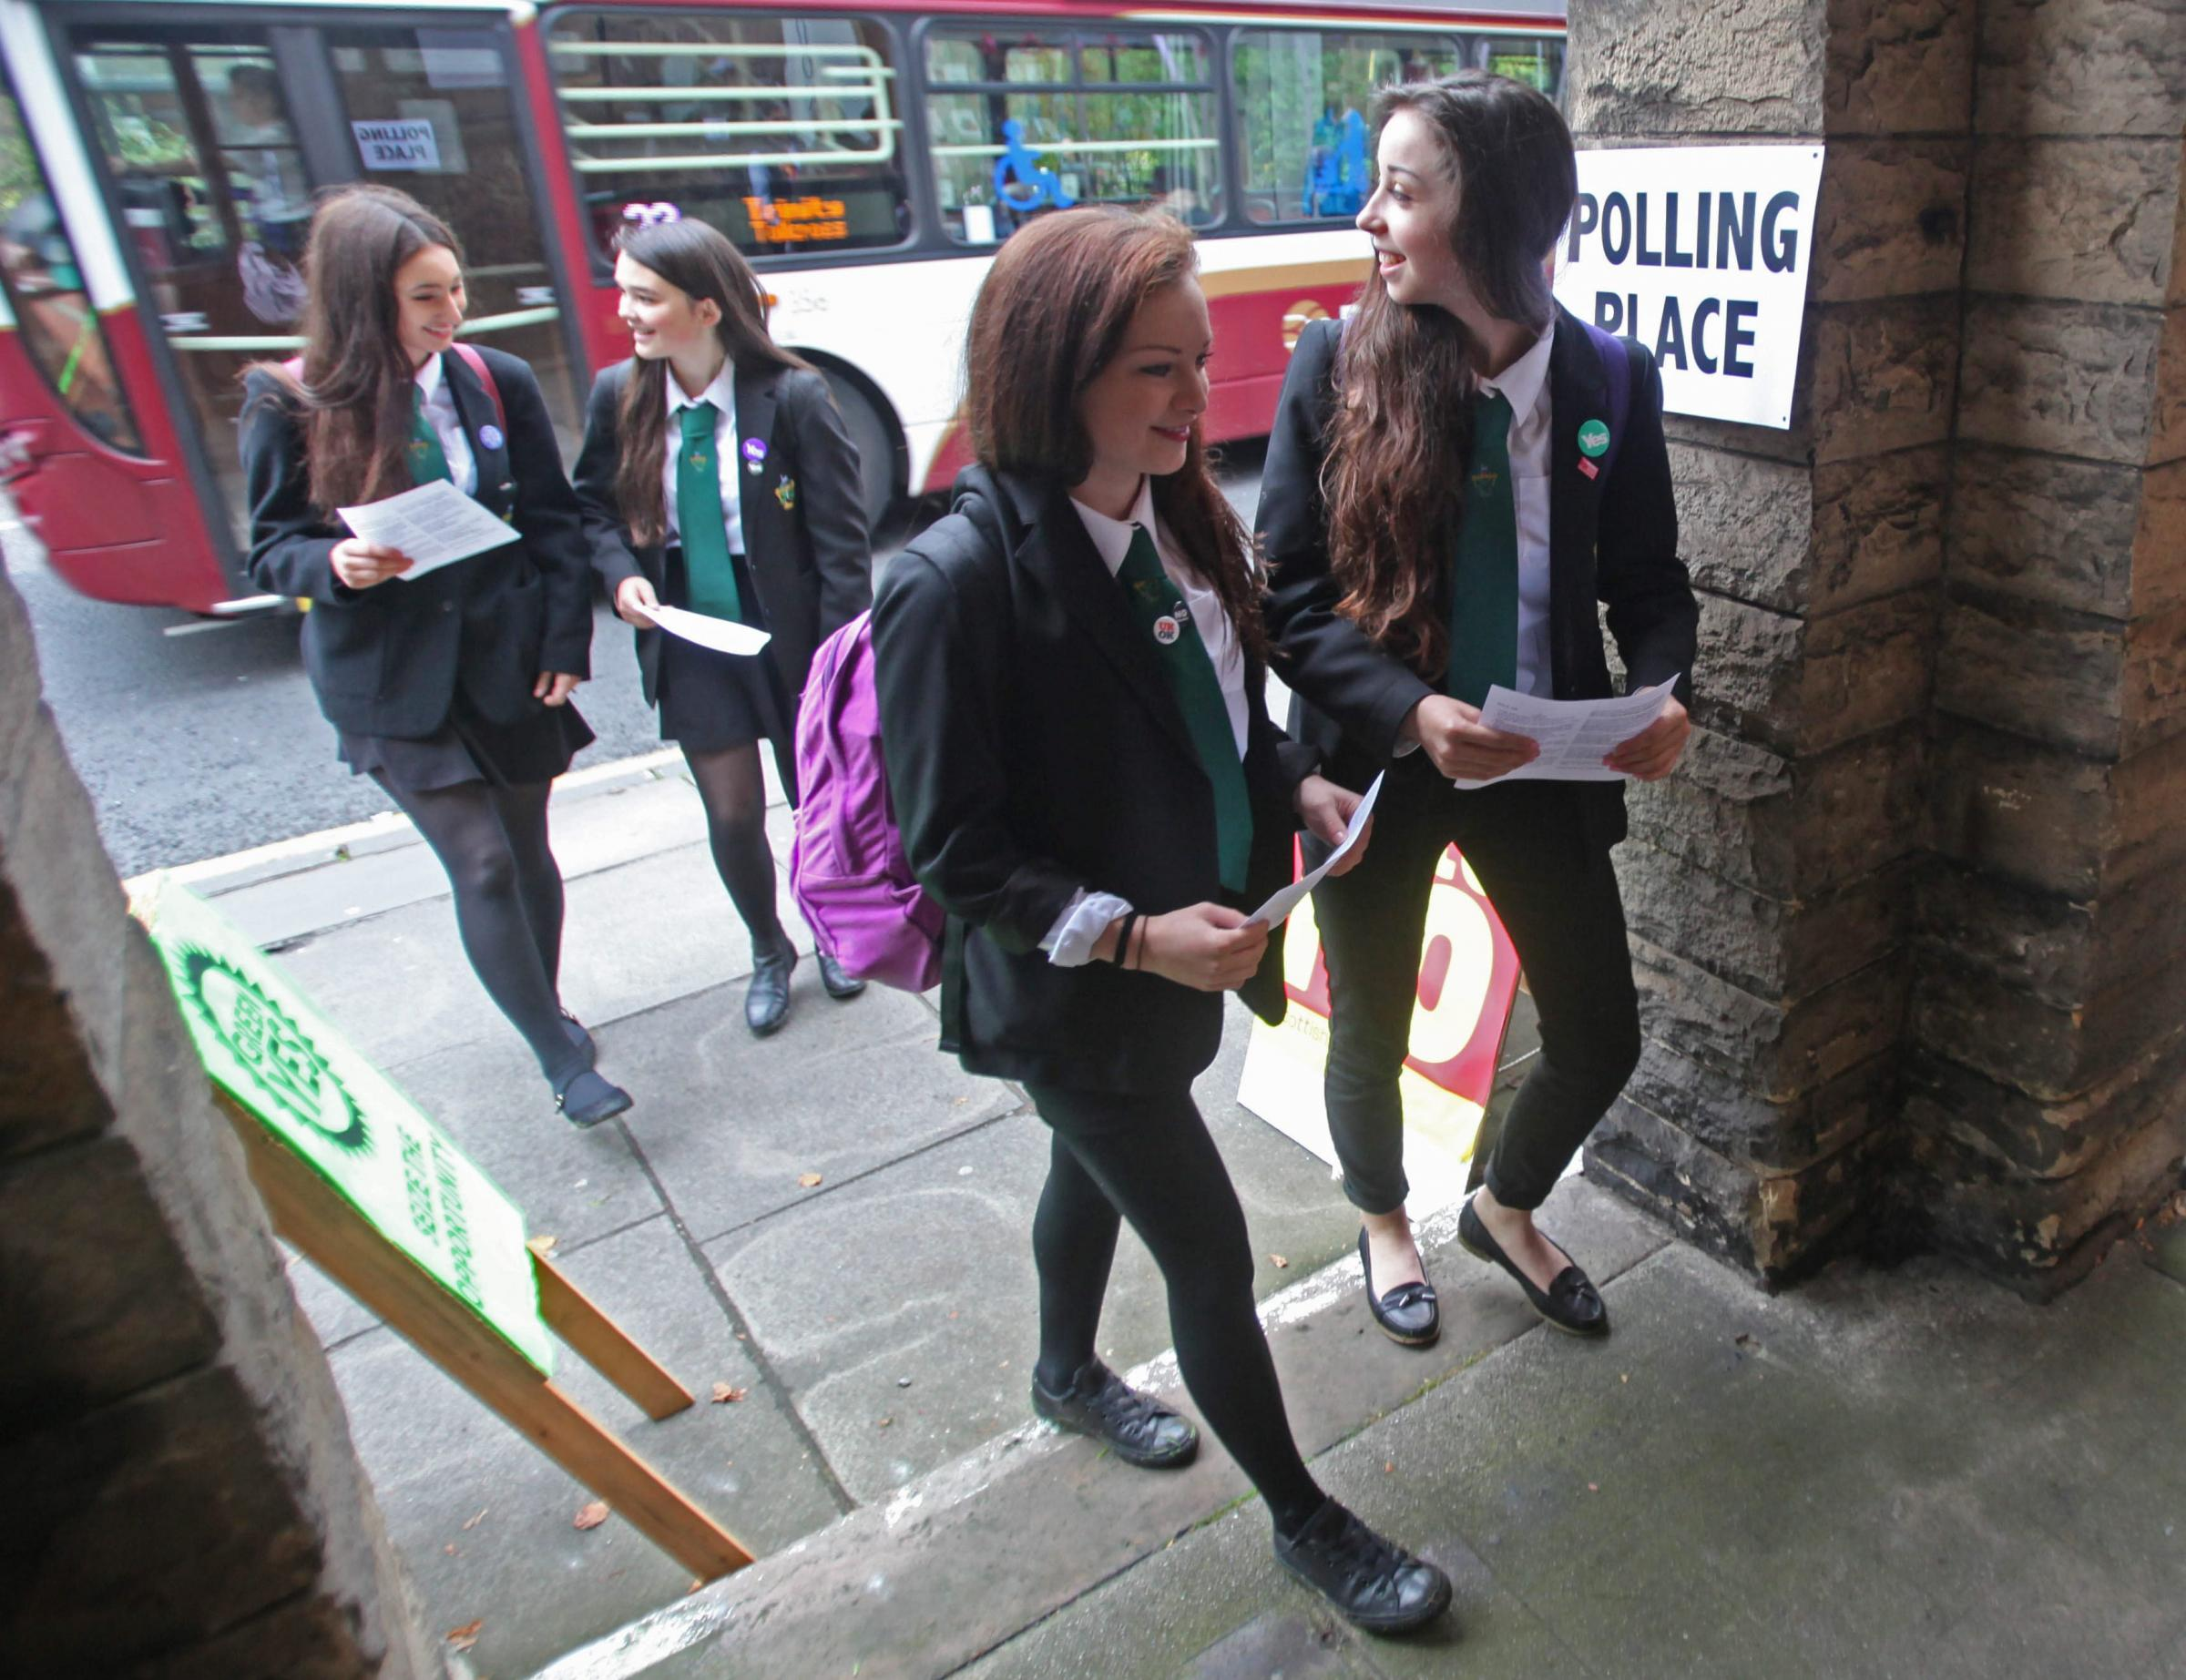 Pupils from Boroughmuir High School in Edinburgh were among the 16 and 17-year olds in Scotland who voted for the first time in the 2014 referendum on independence for Scotland Photograph: Gordon Terris